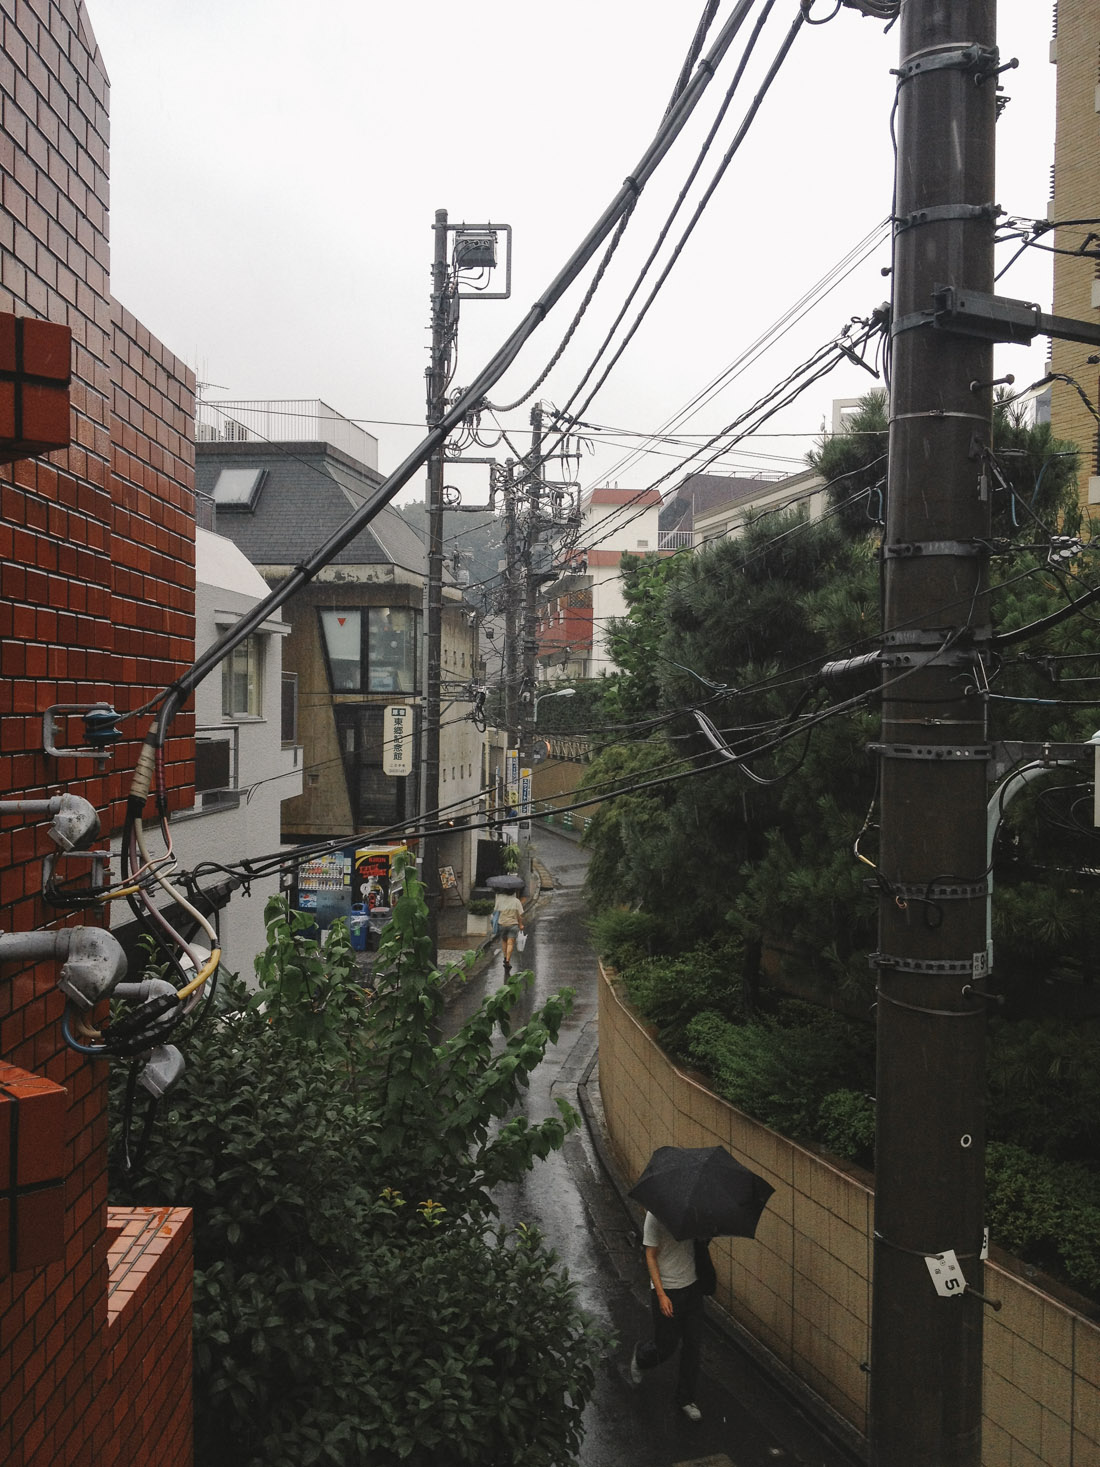 Rainy day in Tokyo